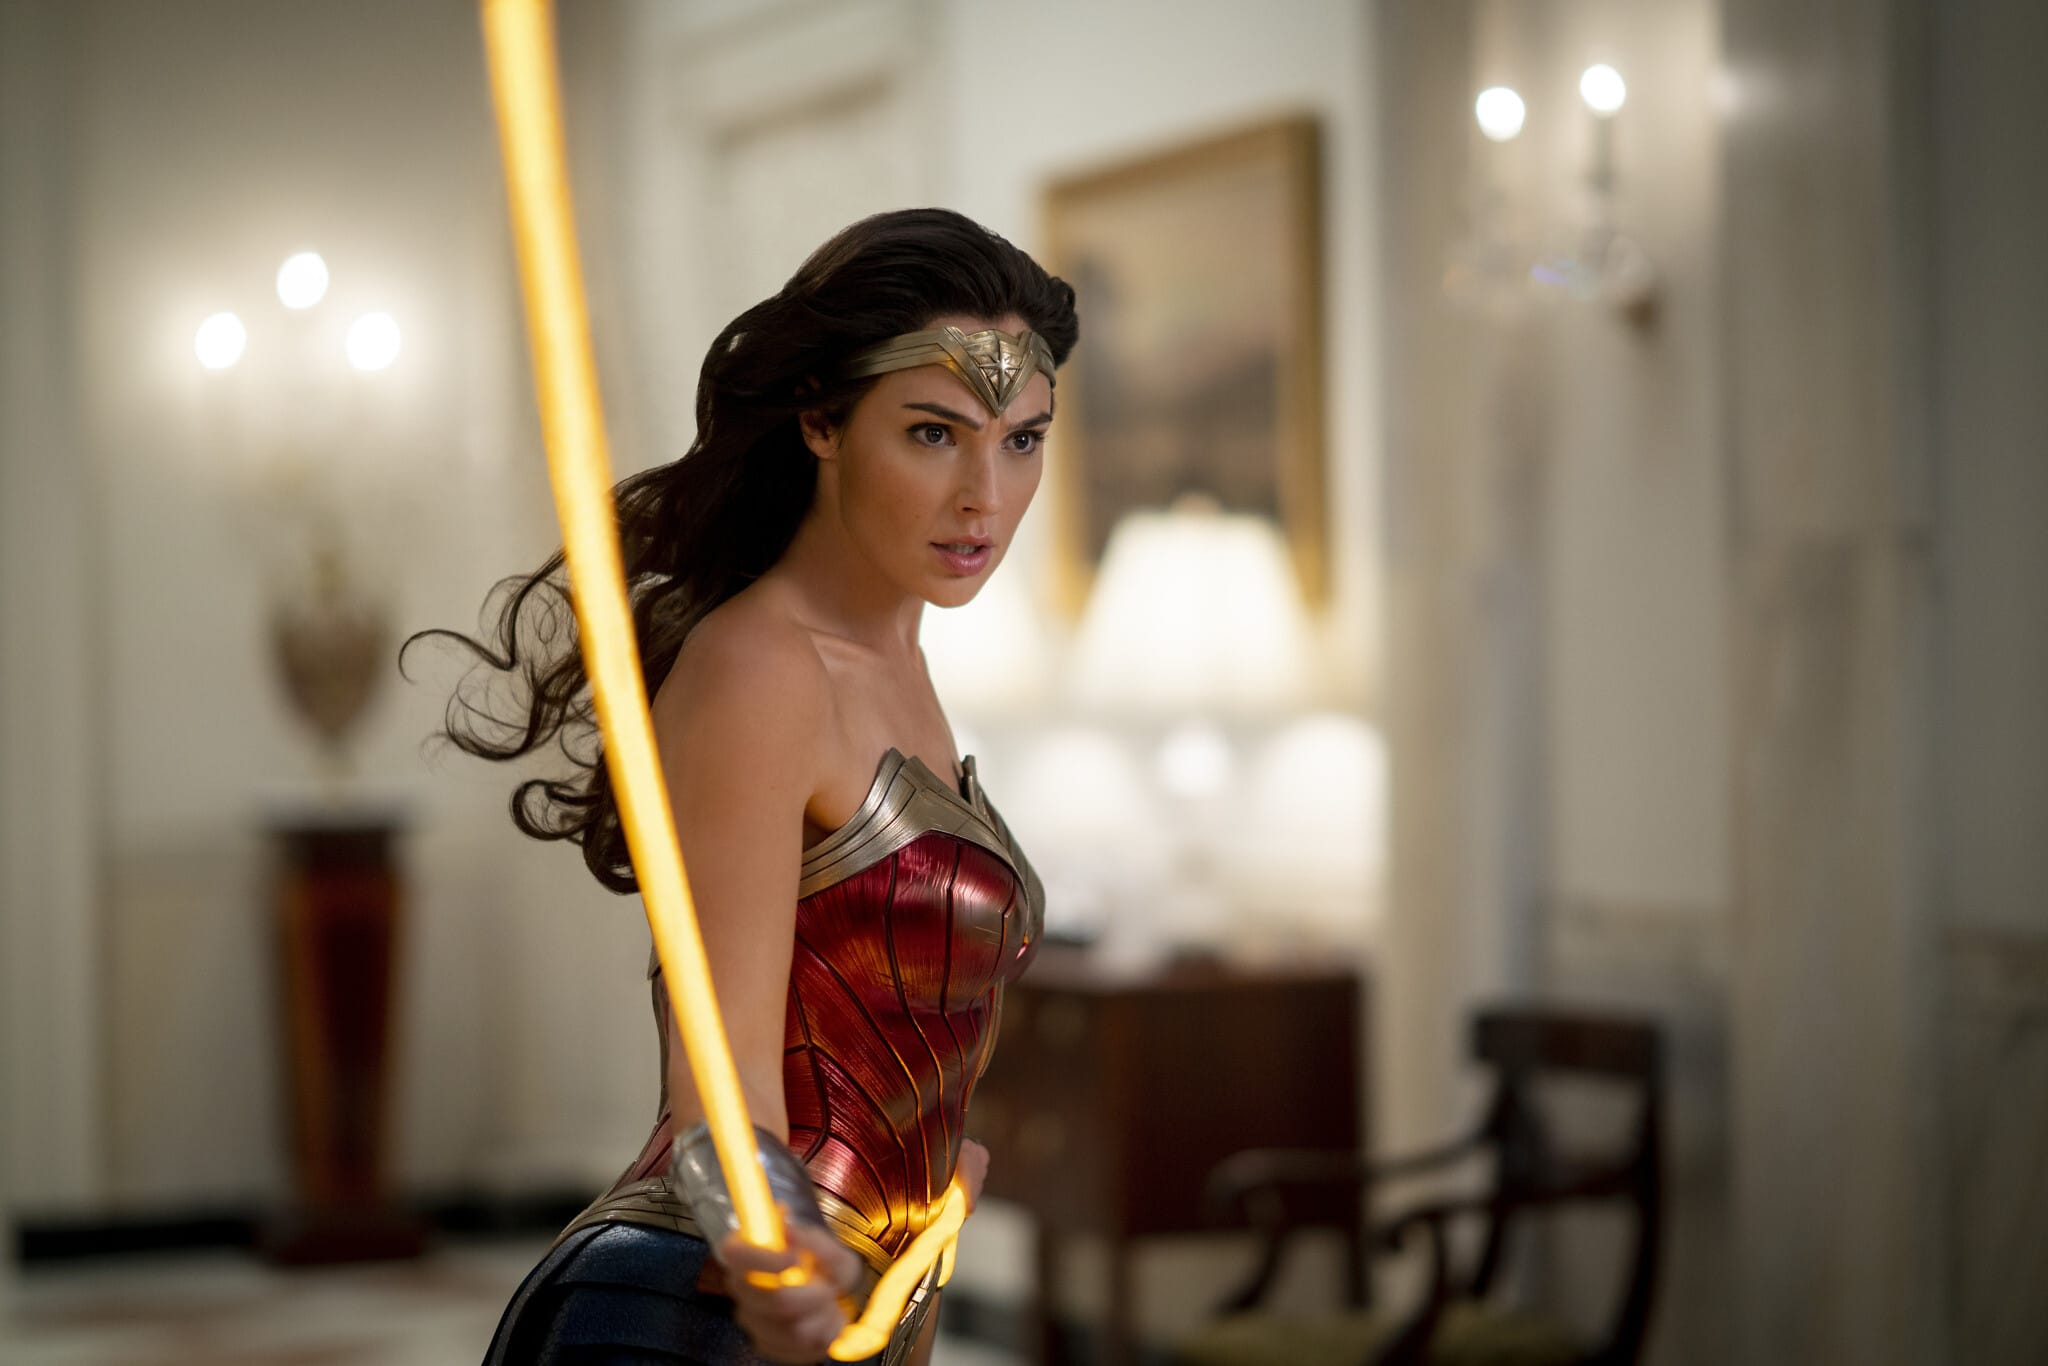 A photo still from Wonder Woman 1984